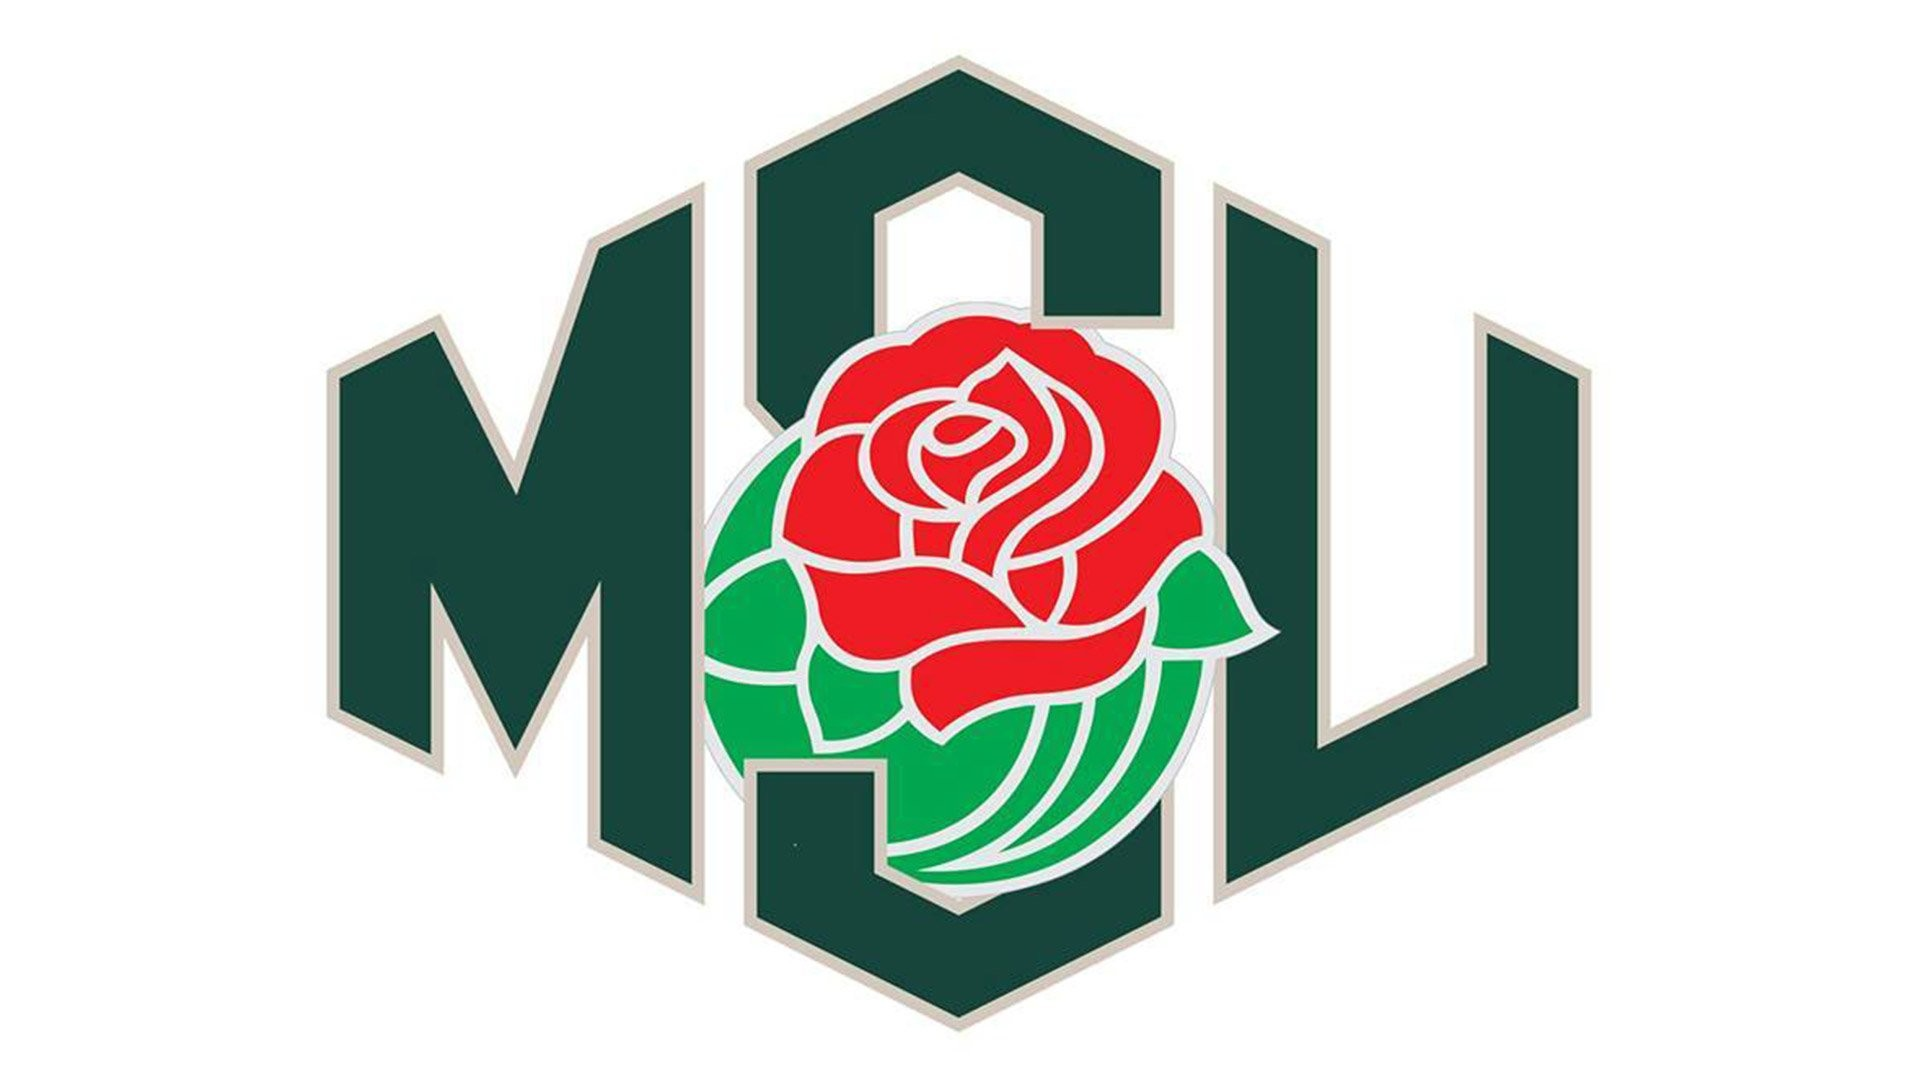 MICHIGAN STATE SPARTANS college football wallpaper background